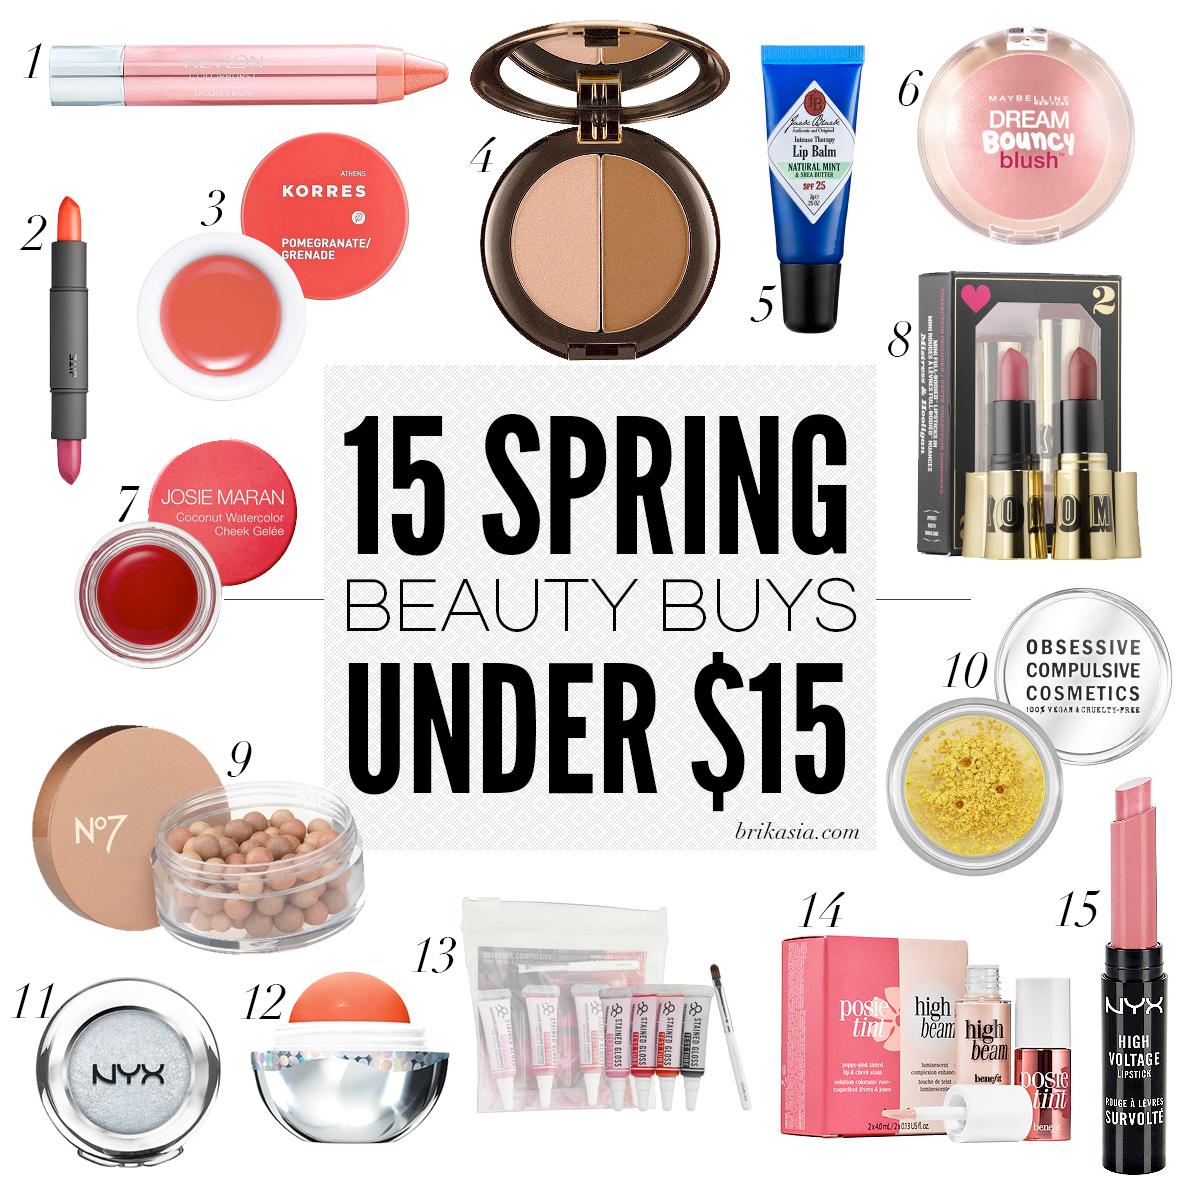 15 Spring Beauty Buys Under $15, affordable spring makeup, makeup under $15